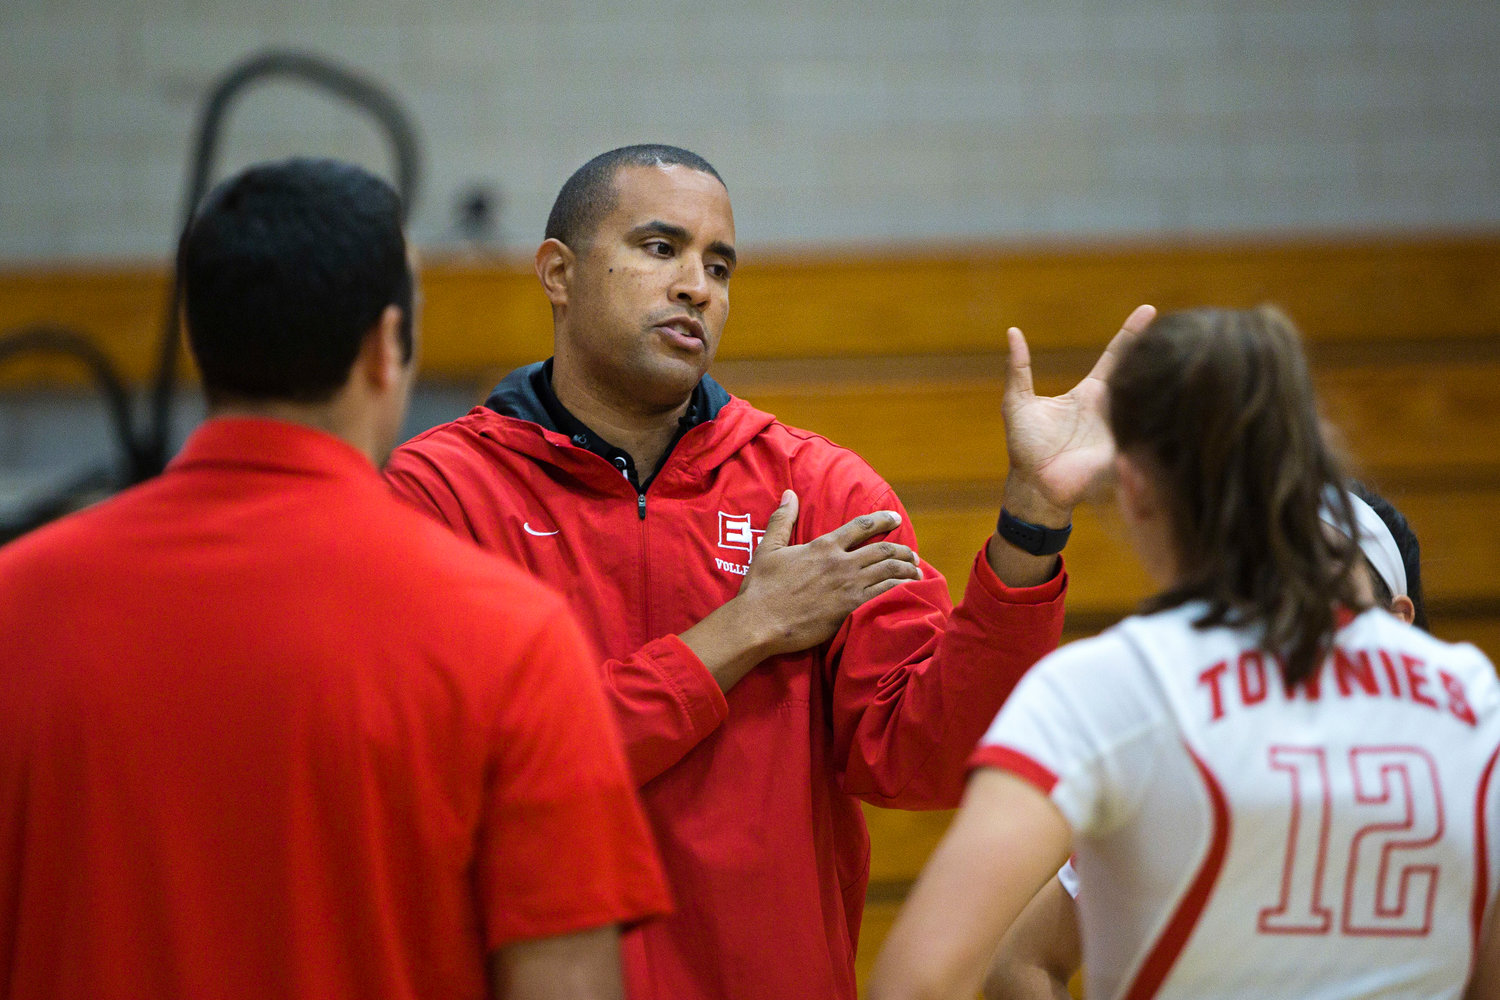 EPHS Head Coach Alex Butler talks strategy during a time-out.